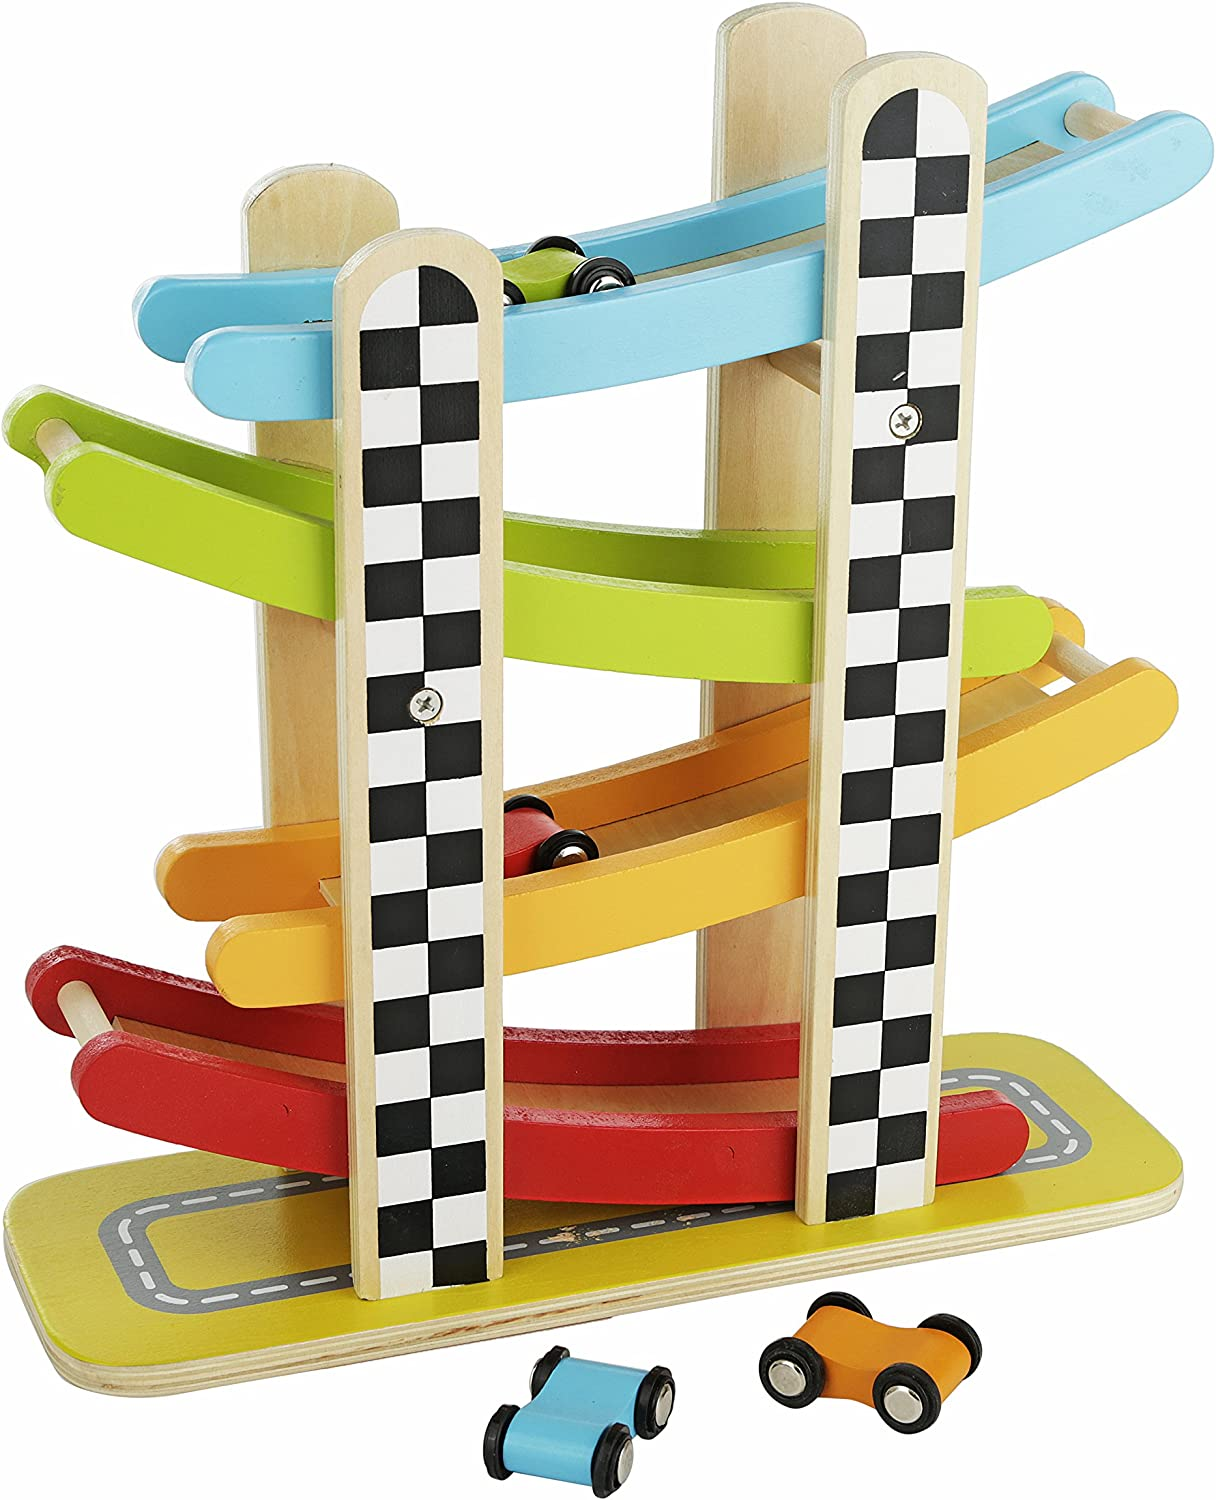 Colorful Wood Race Track Ramp with 4 Wooden Race Cars - Solid Wood Educational Baby Toy for Toddler Boys and Girls Age 18-24 Months, 2 Years and Up - Classic Early Development Vehicle Playset Toy